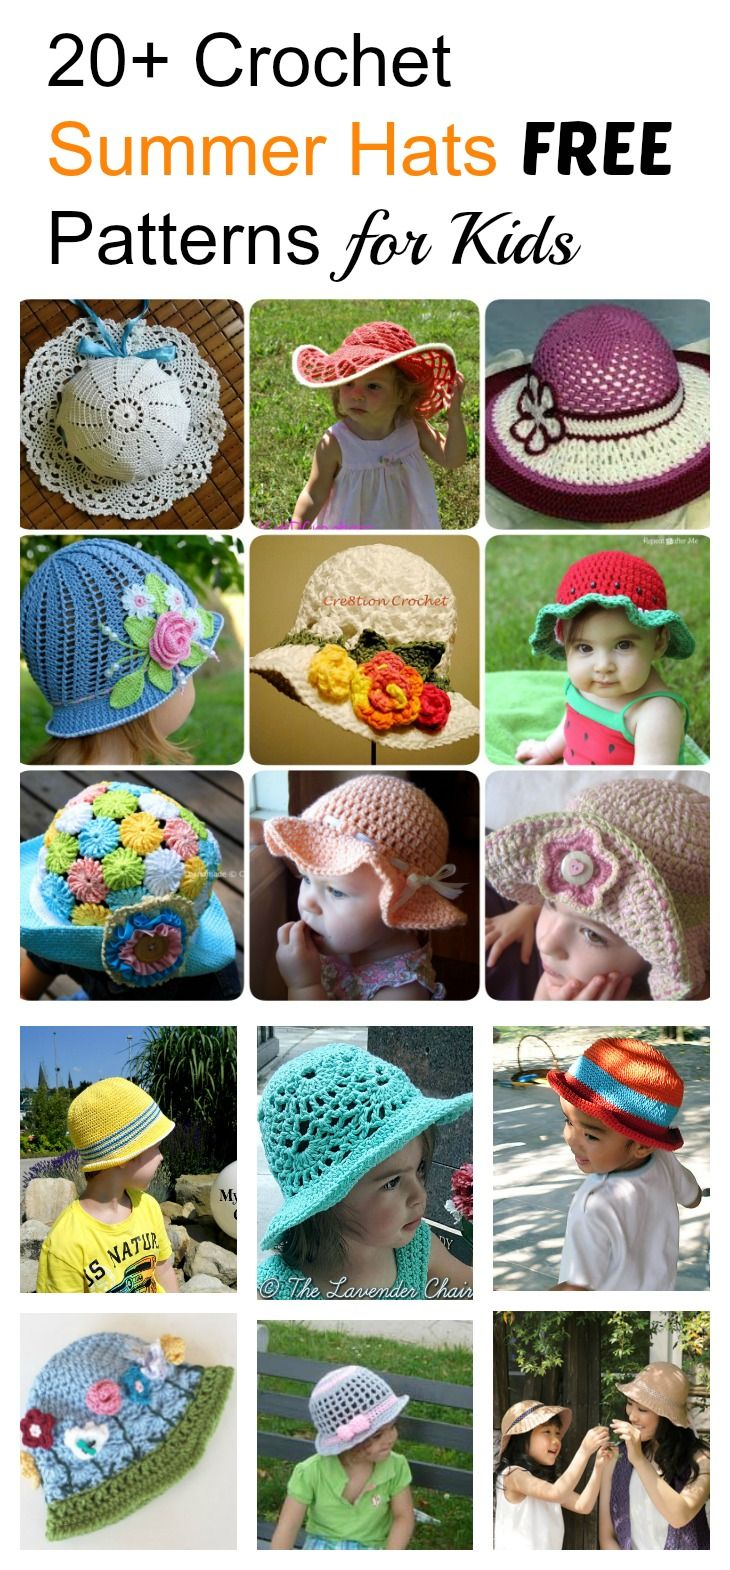 20 crochet hat free patterns for kids crochet summer hats 20 crochet hat free patterns for kids bankloansurffo Choice Image